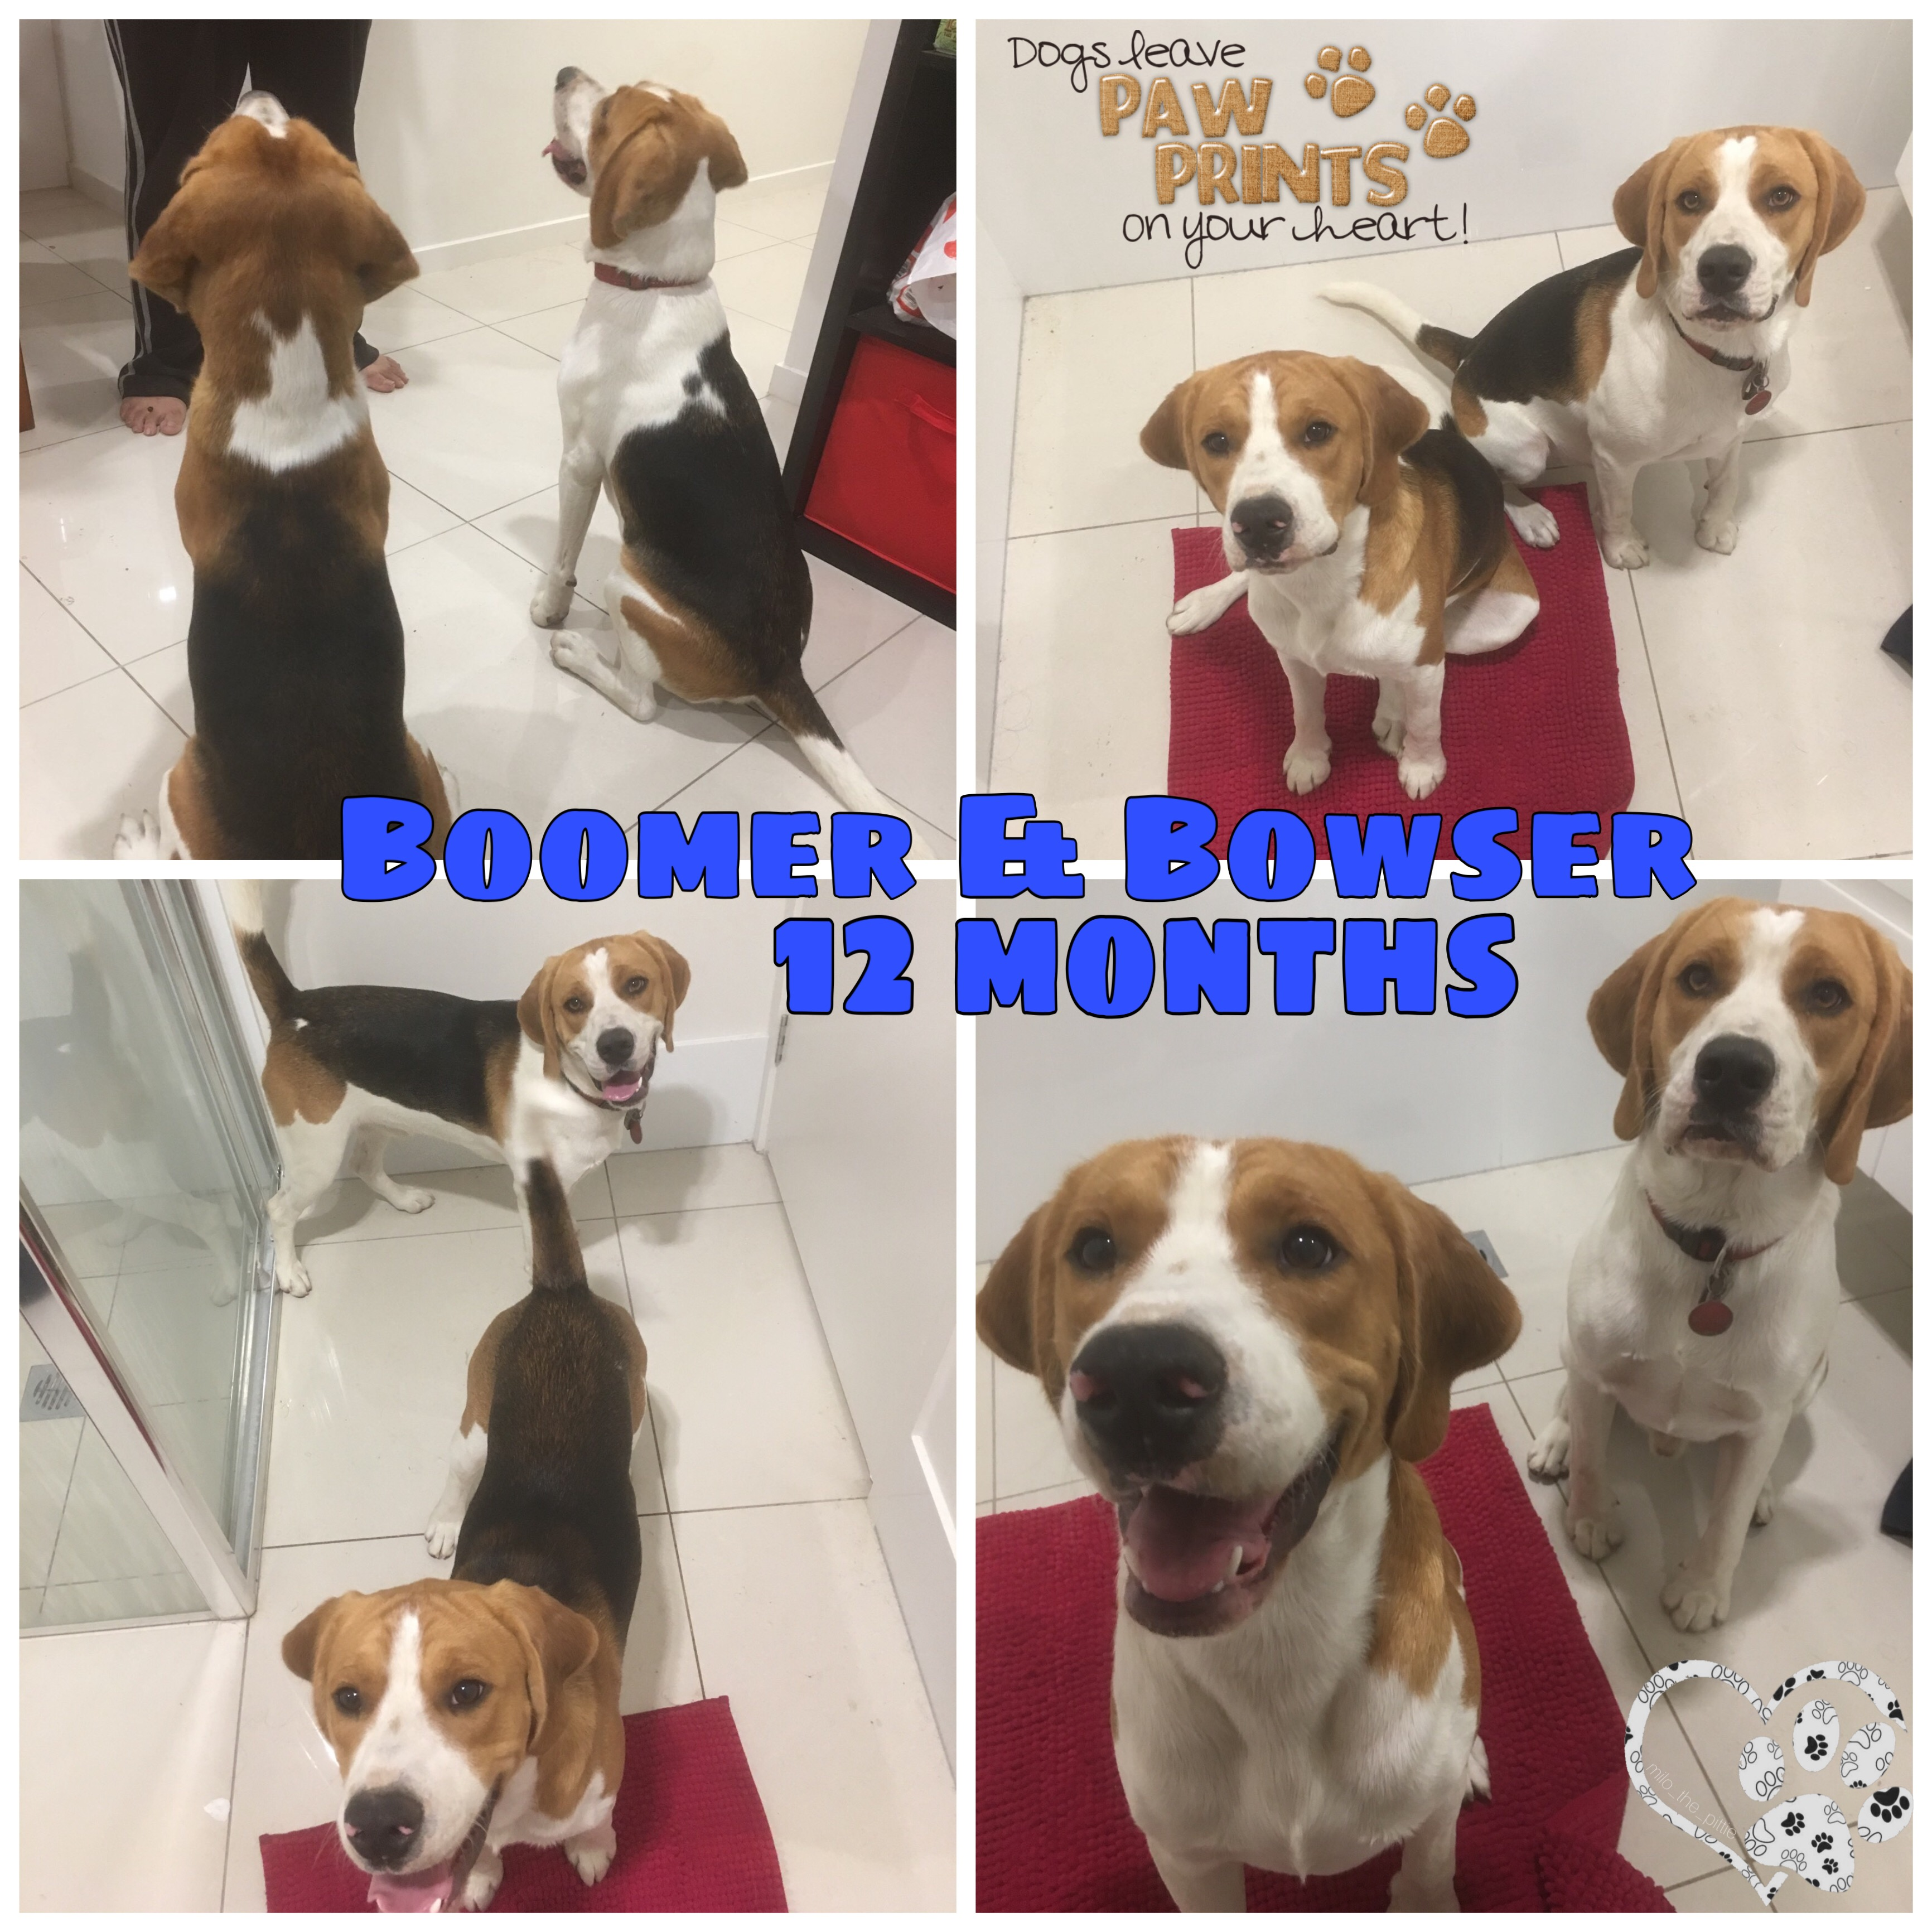 Boomer is adopted